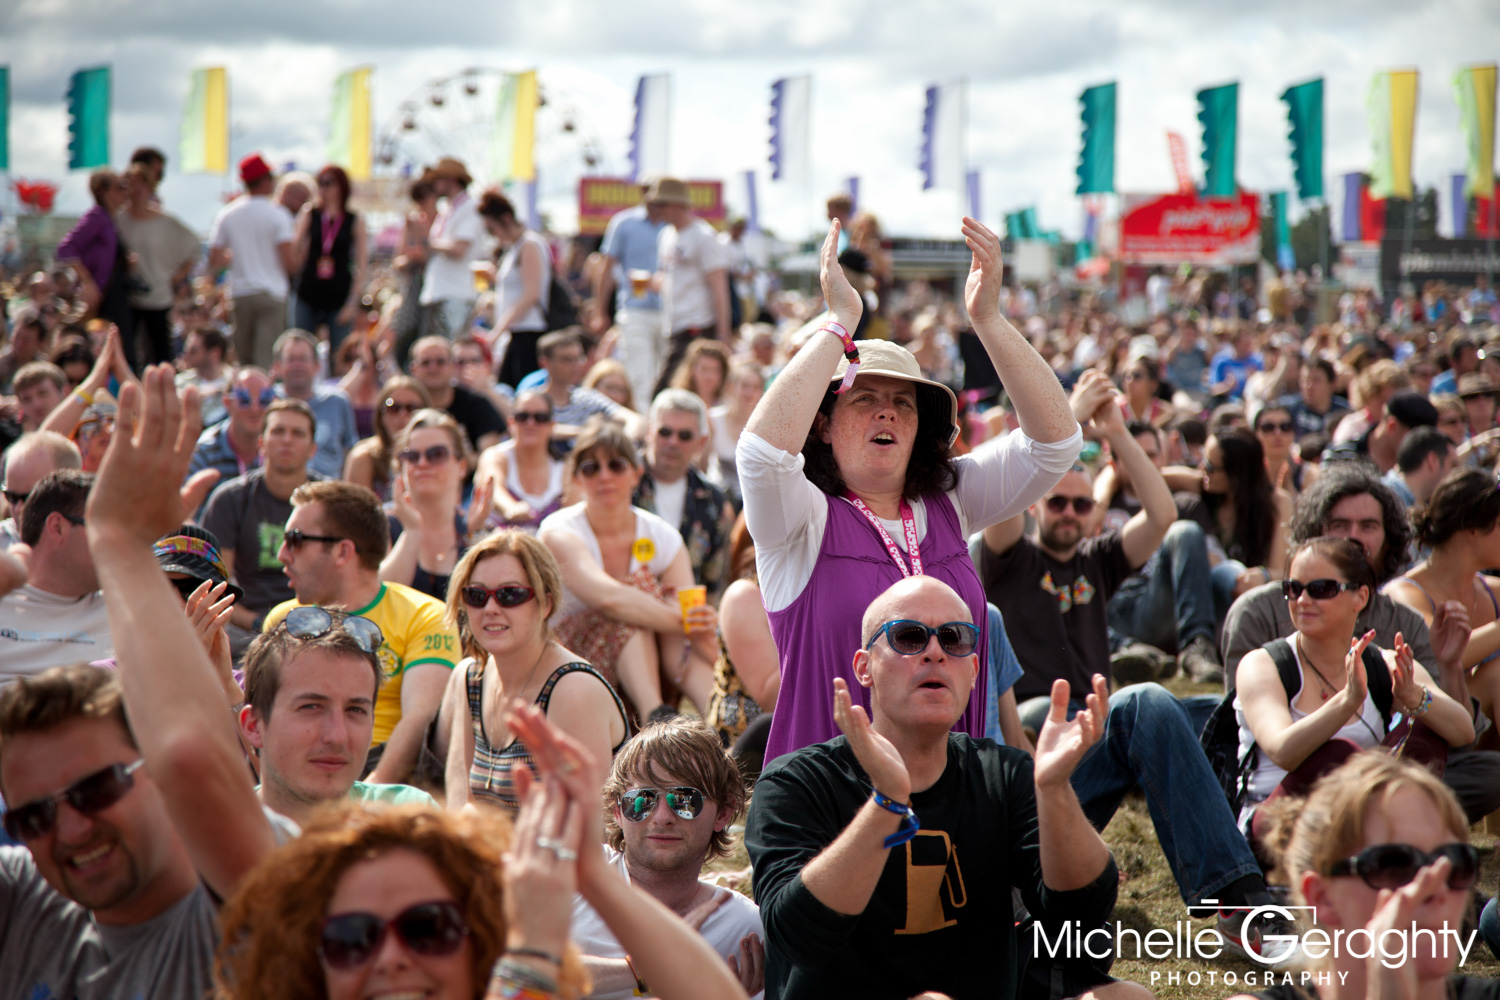 Electric Picnic Music & Arts Festival